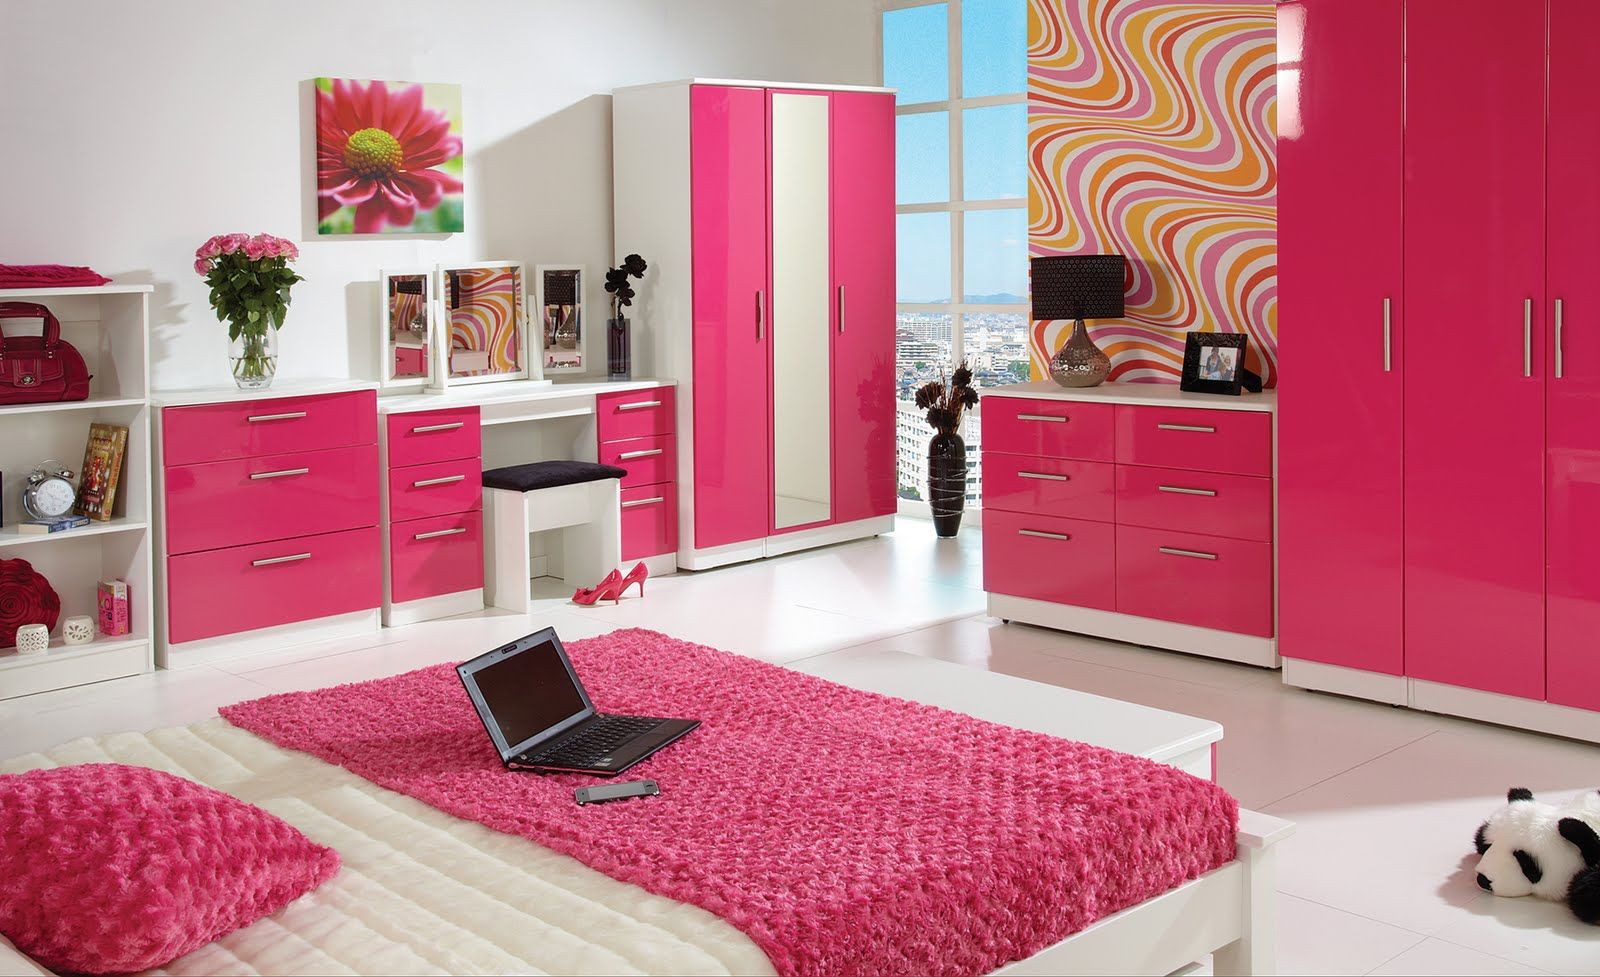 Pink and White Bedroom Furniture | Pink bedroom design ...